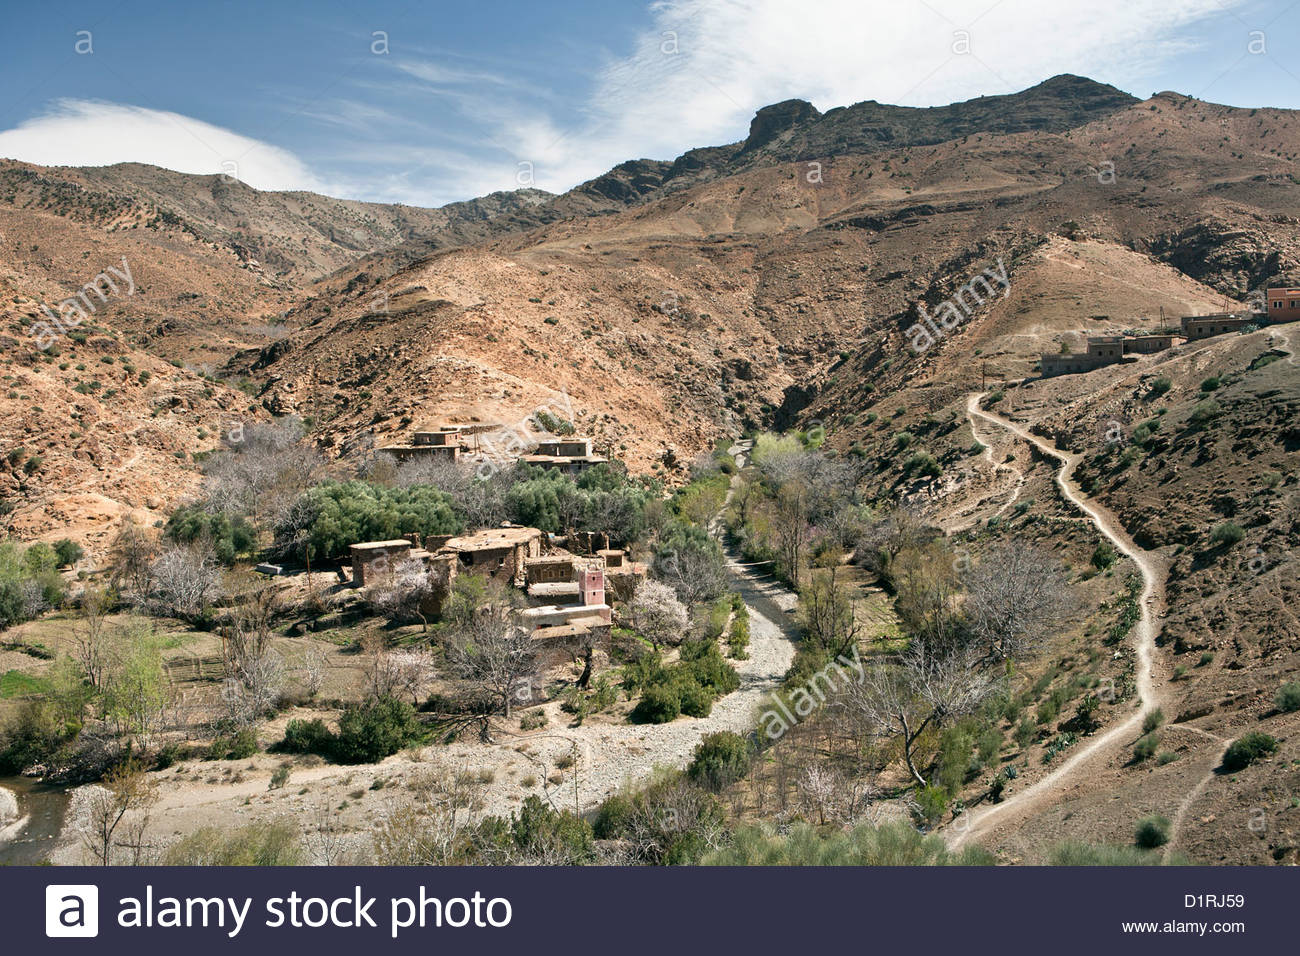 Morocco, near Tichka pass, Village. - Stock Image